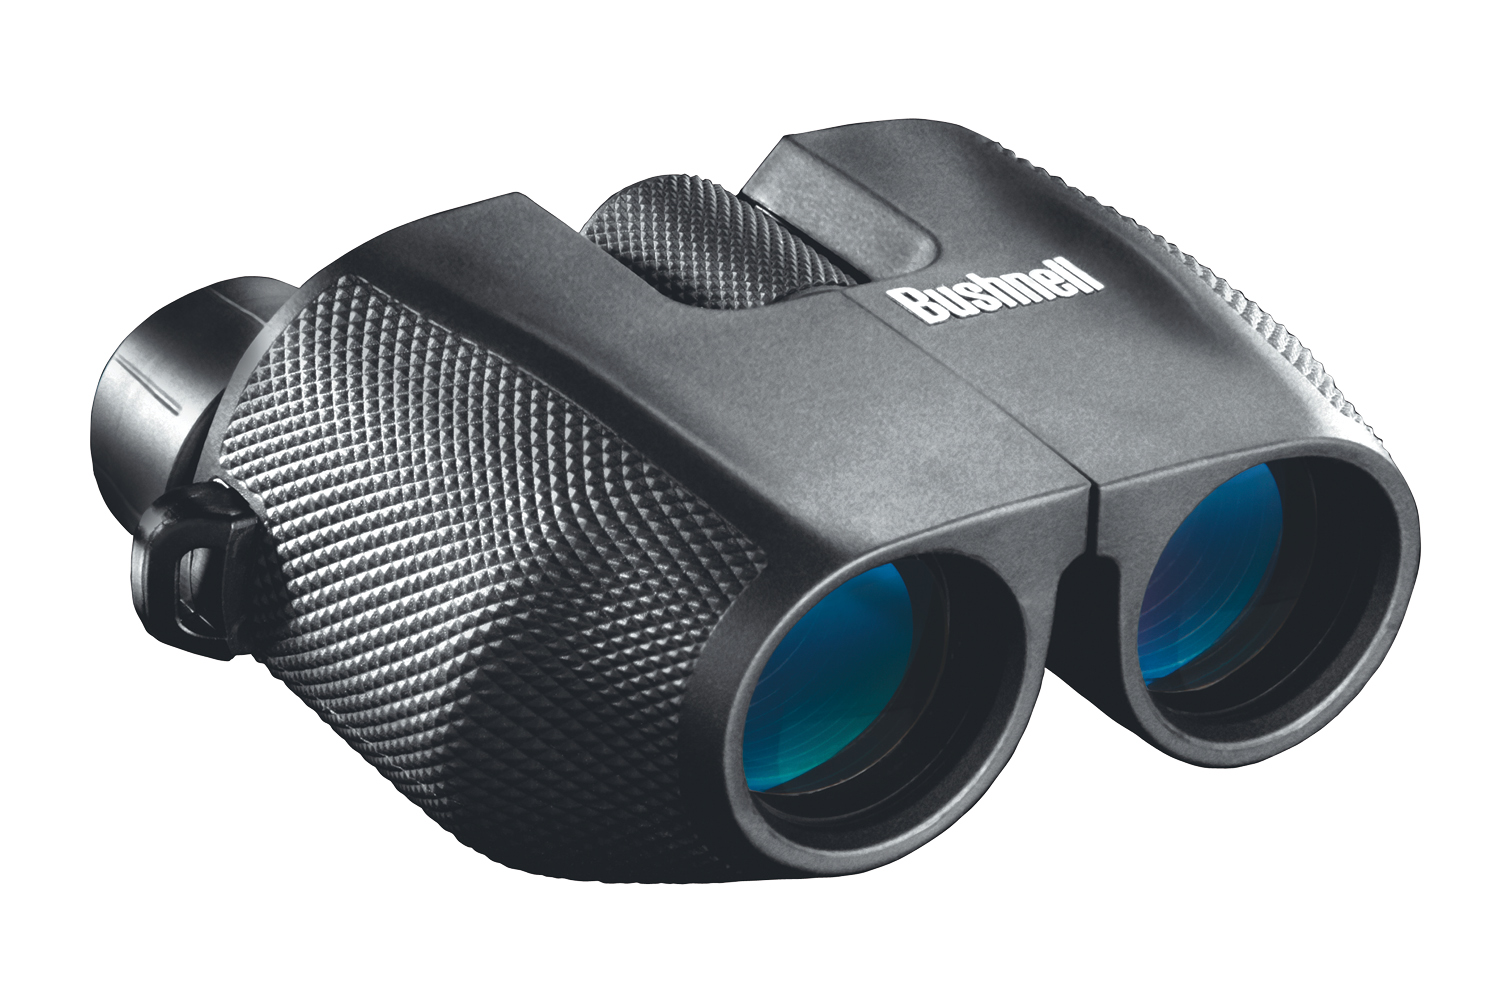 Бинокль Bushnell PowerView PORRO 8x25 бинокль levenhuk rainbow 8x25 желтый